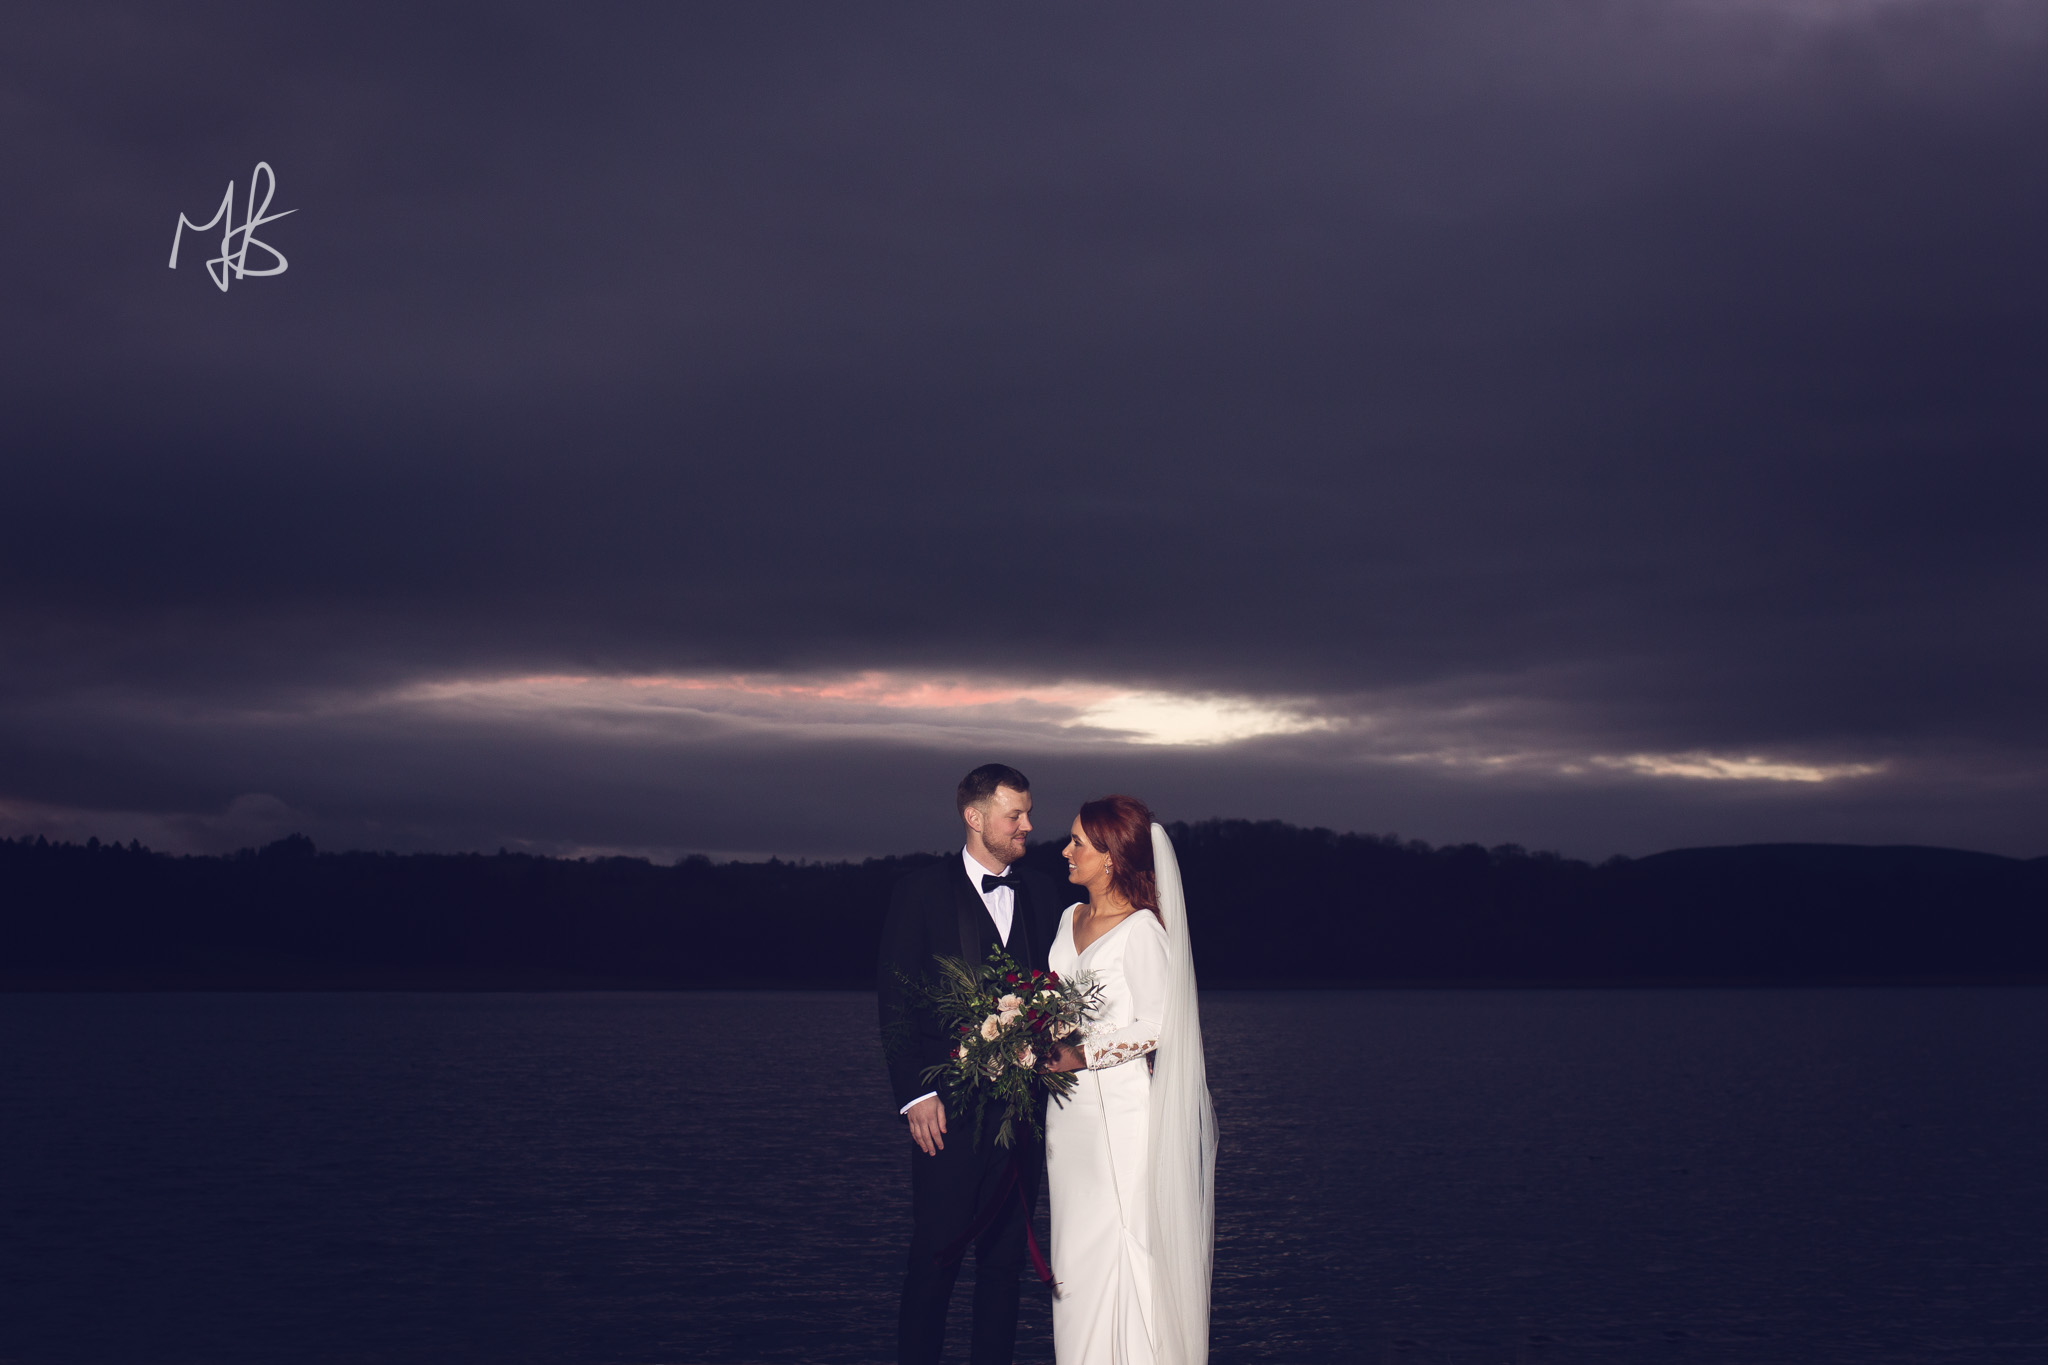 Mark_Barnes_Northern_Ireland_wedding_photographer_Lough_Erne_Resort_Eniskillen_Wedding_photography-Previews-219.jpg